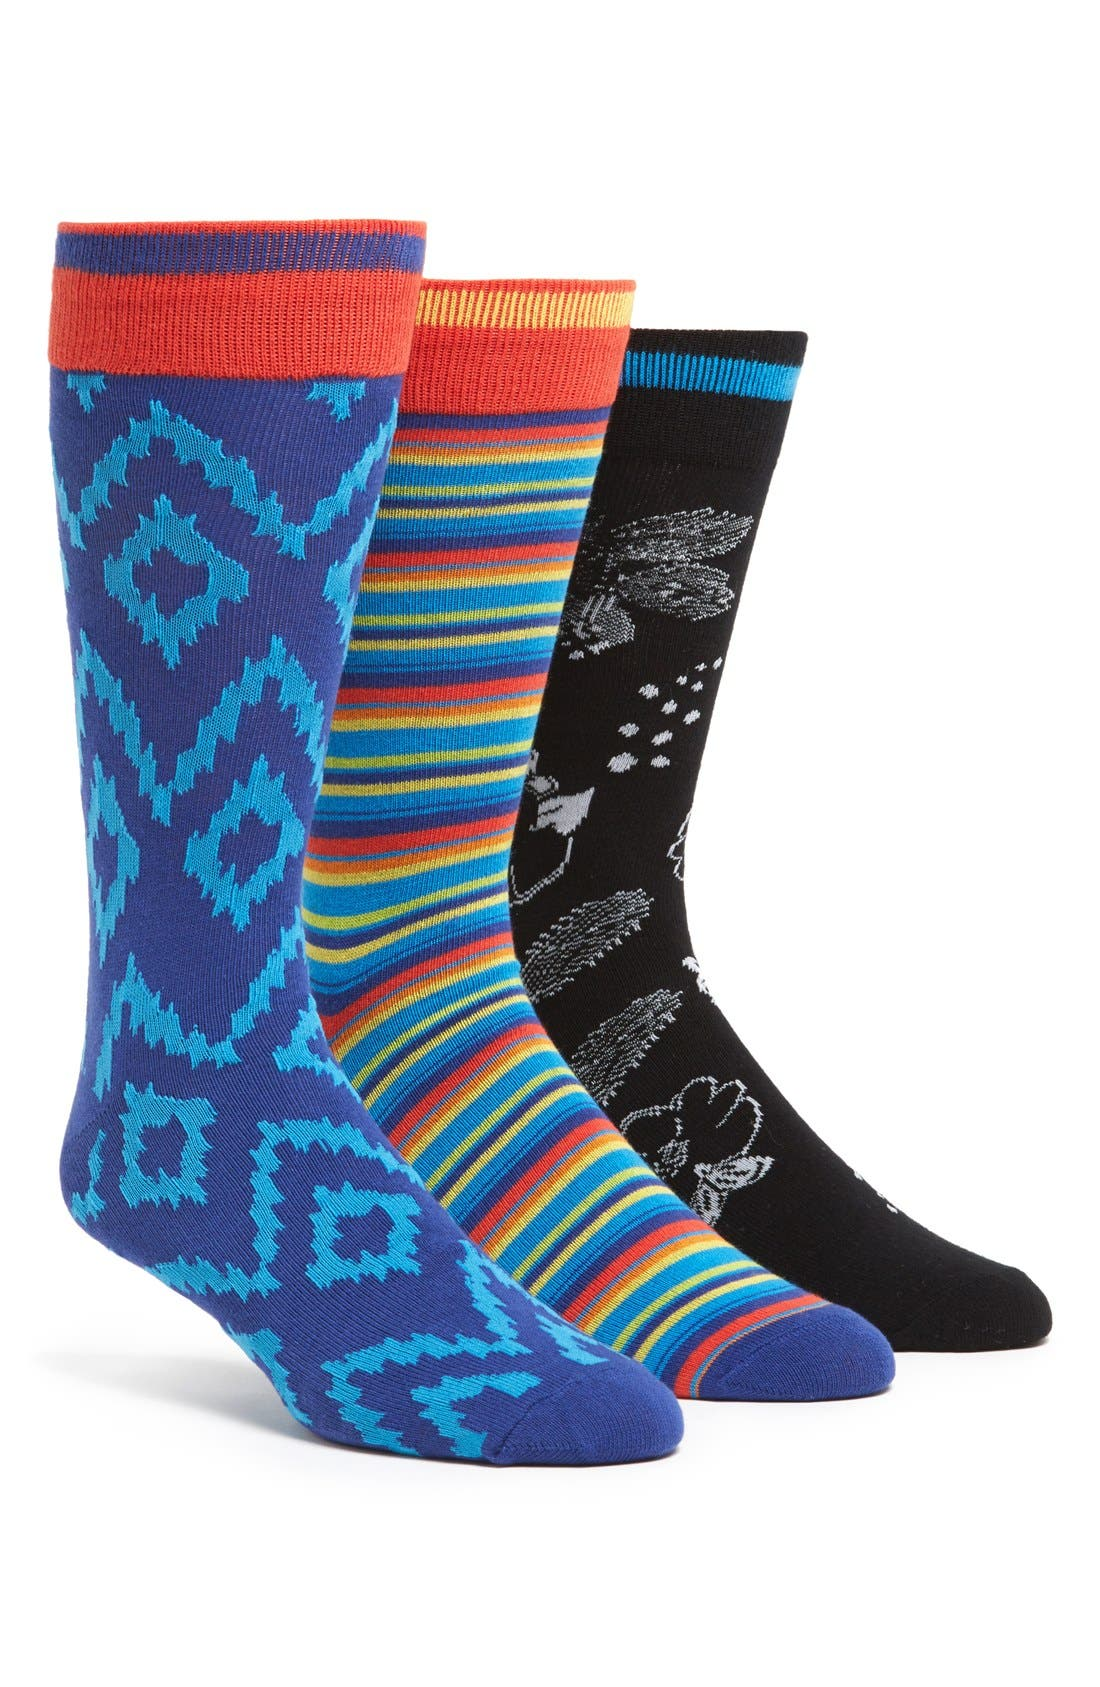 Main Image - The Rail Cotton Blend Socks (Assorted 3-Pack)